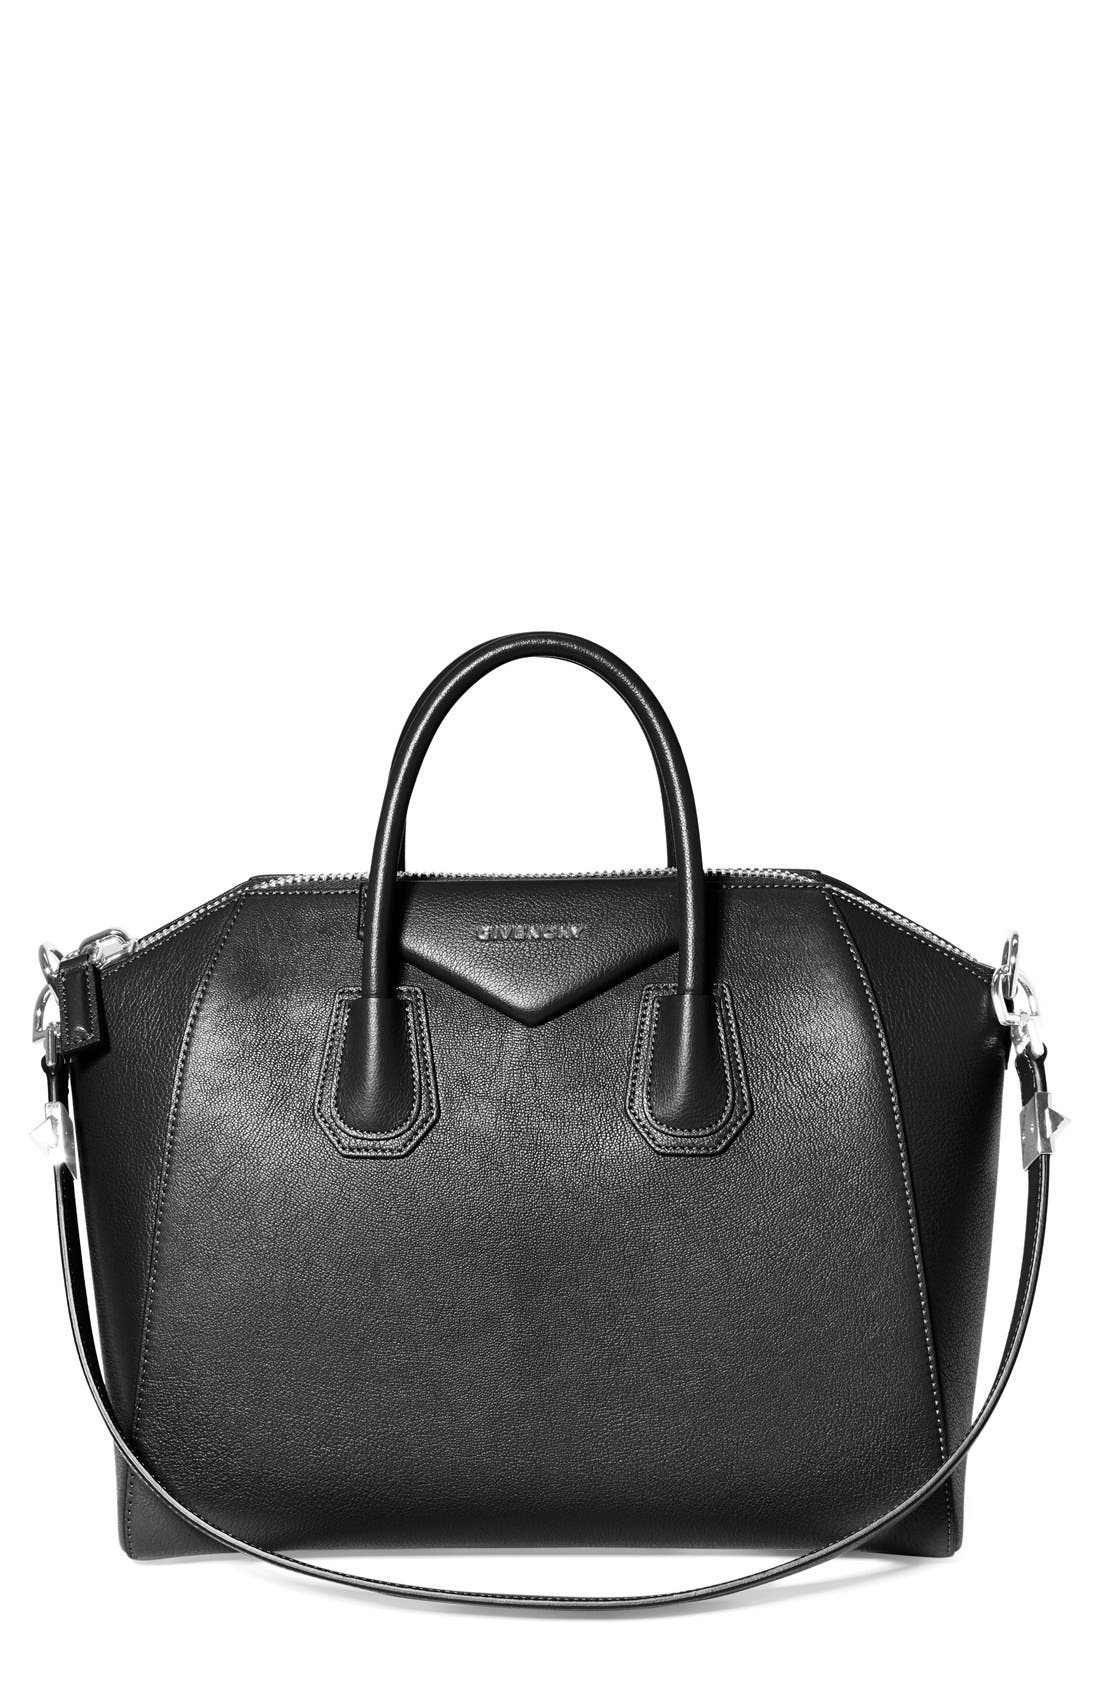 Alternate Image 1 Selected - Givenchy 'Medium Antigona' Sugar Leather Satchel